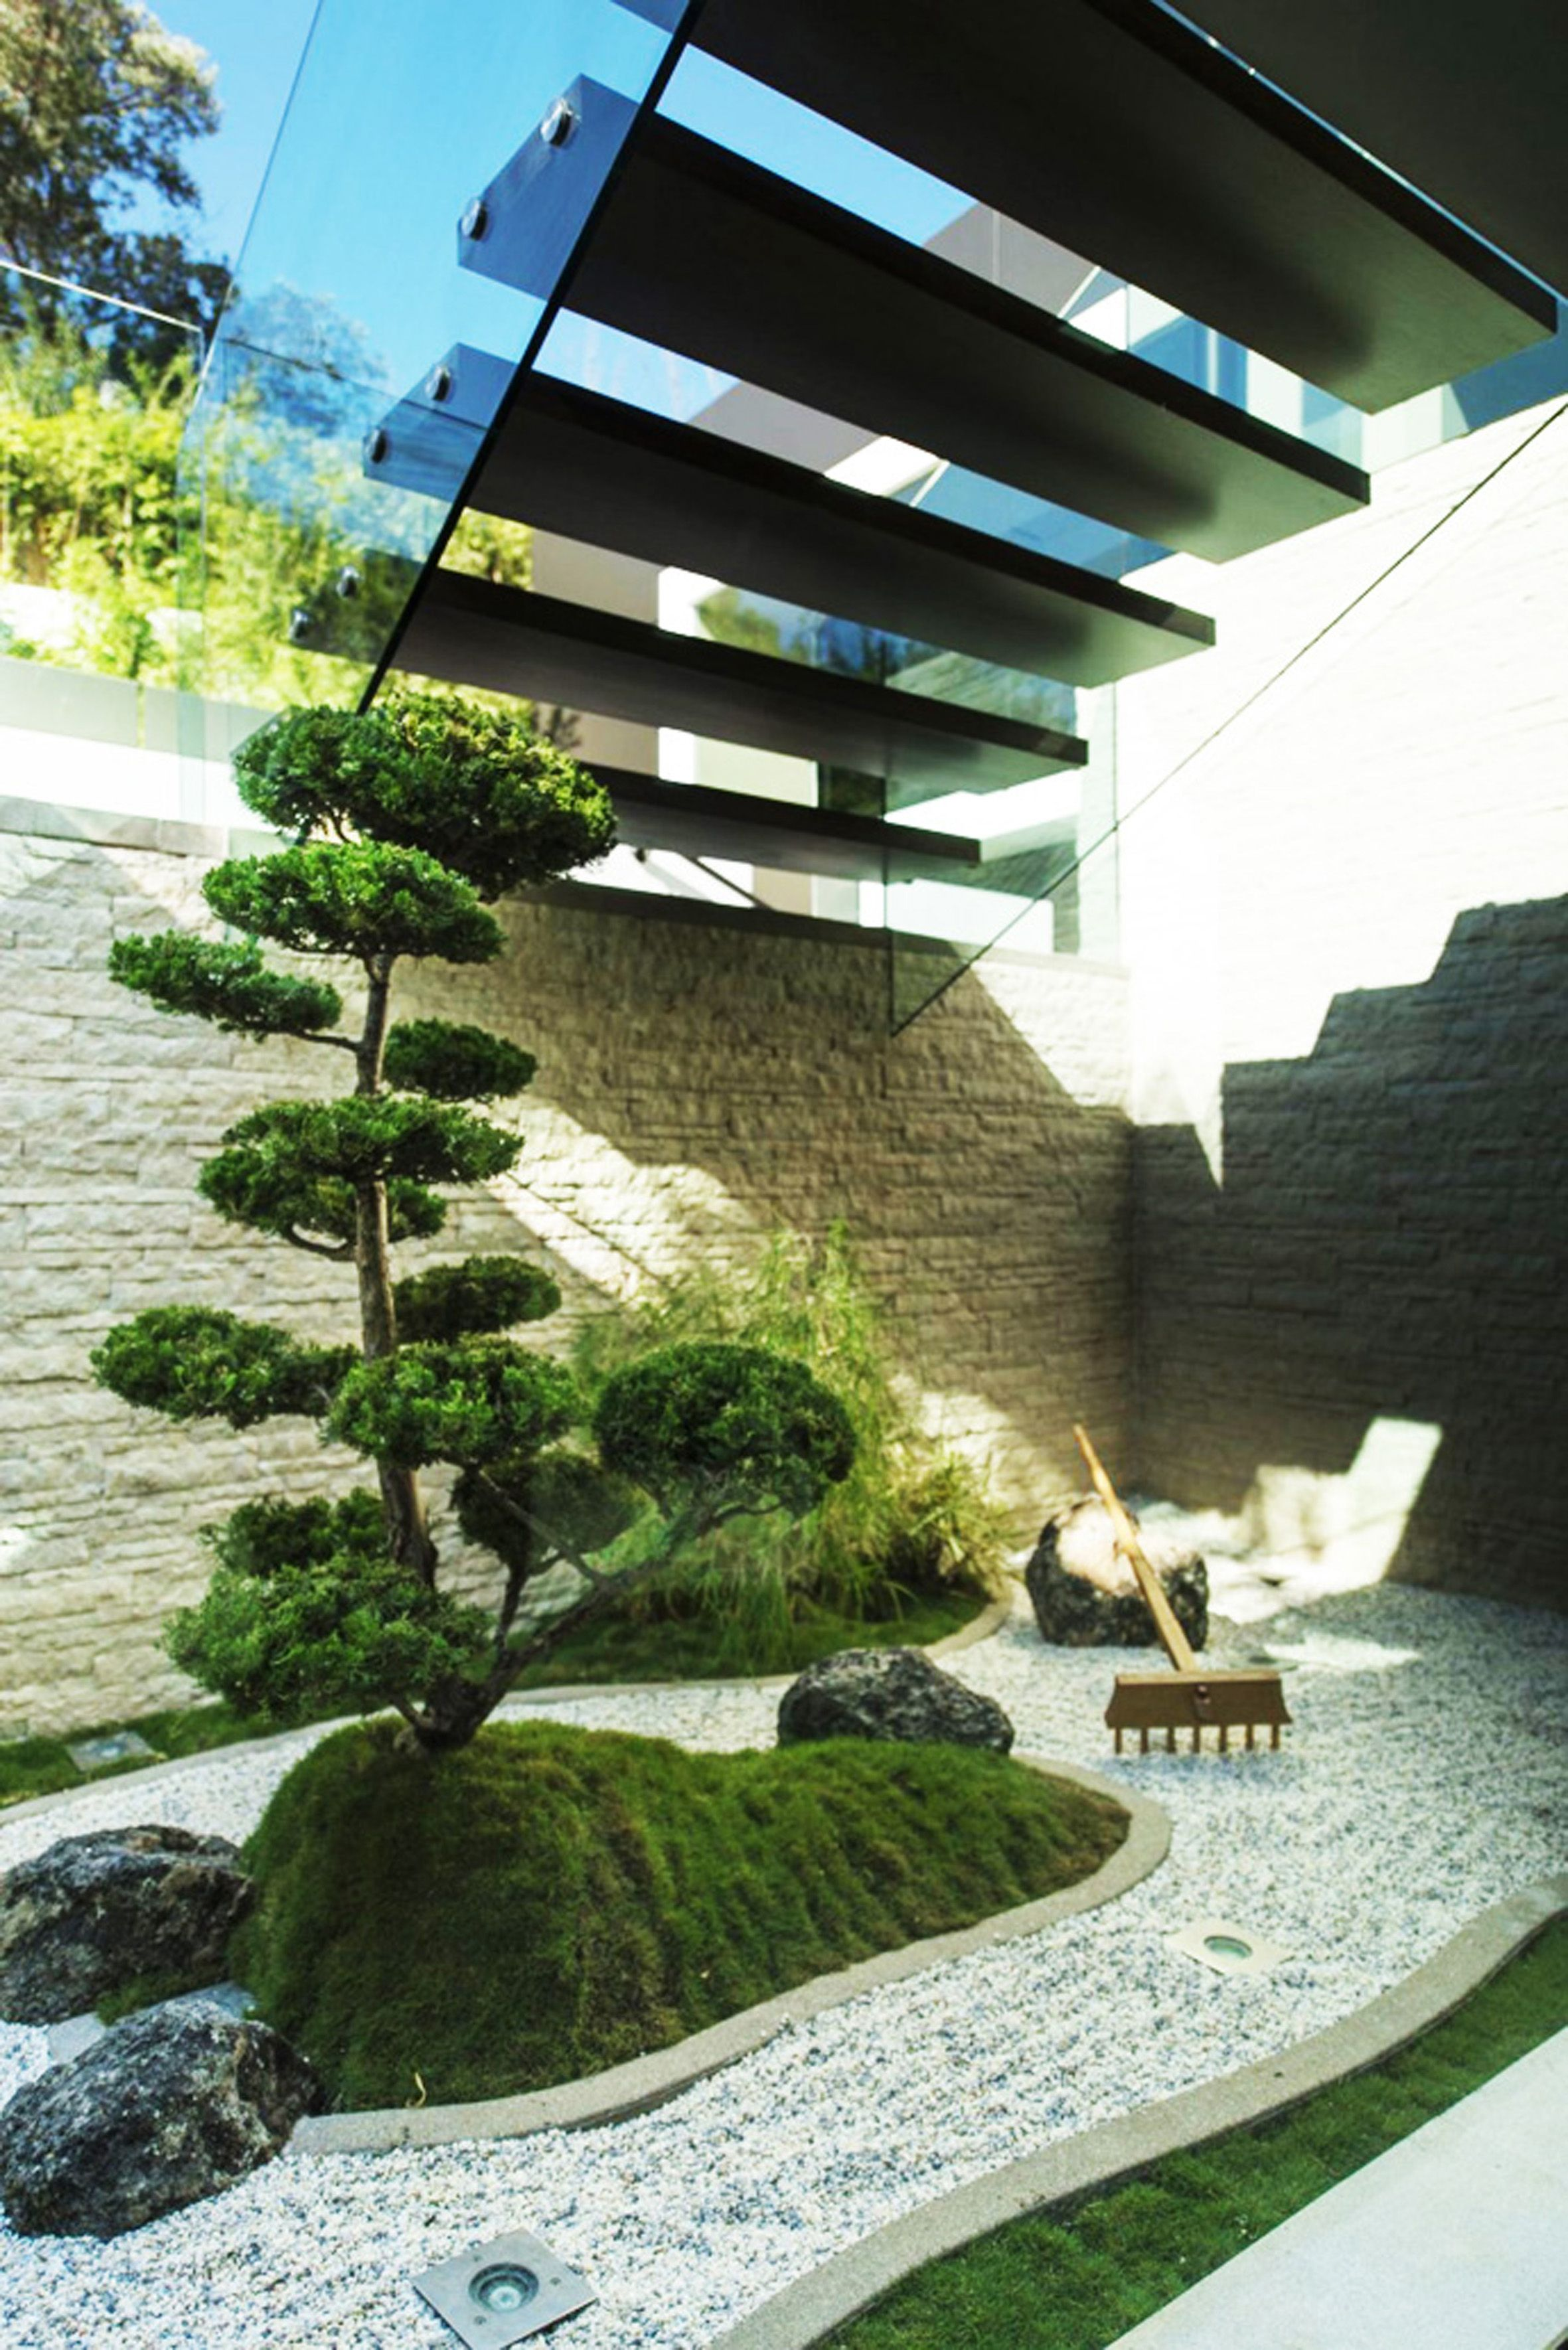 Delightful A Zen Garden Nook Right Under The Stairs. Imagine An Entryway With An  Overlook Into An Interior Courtyard.